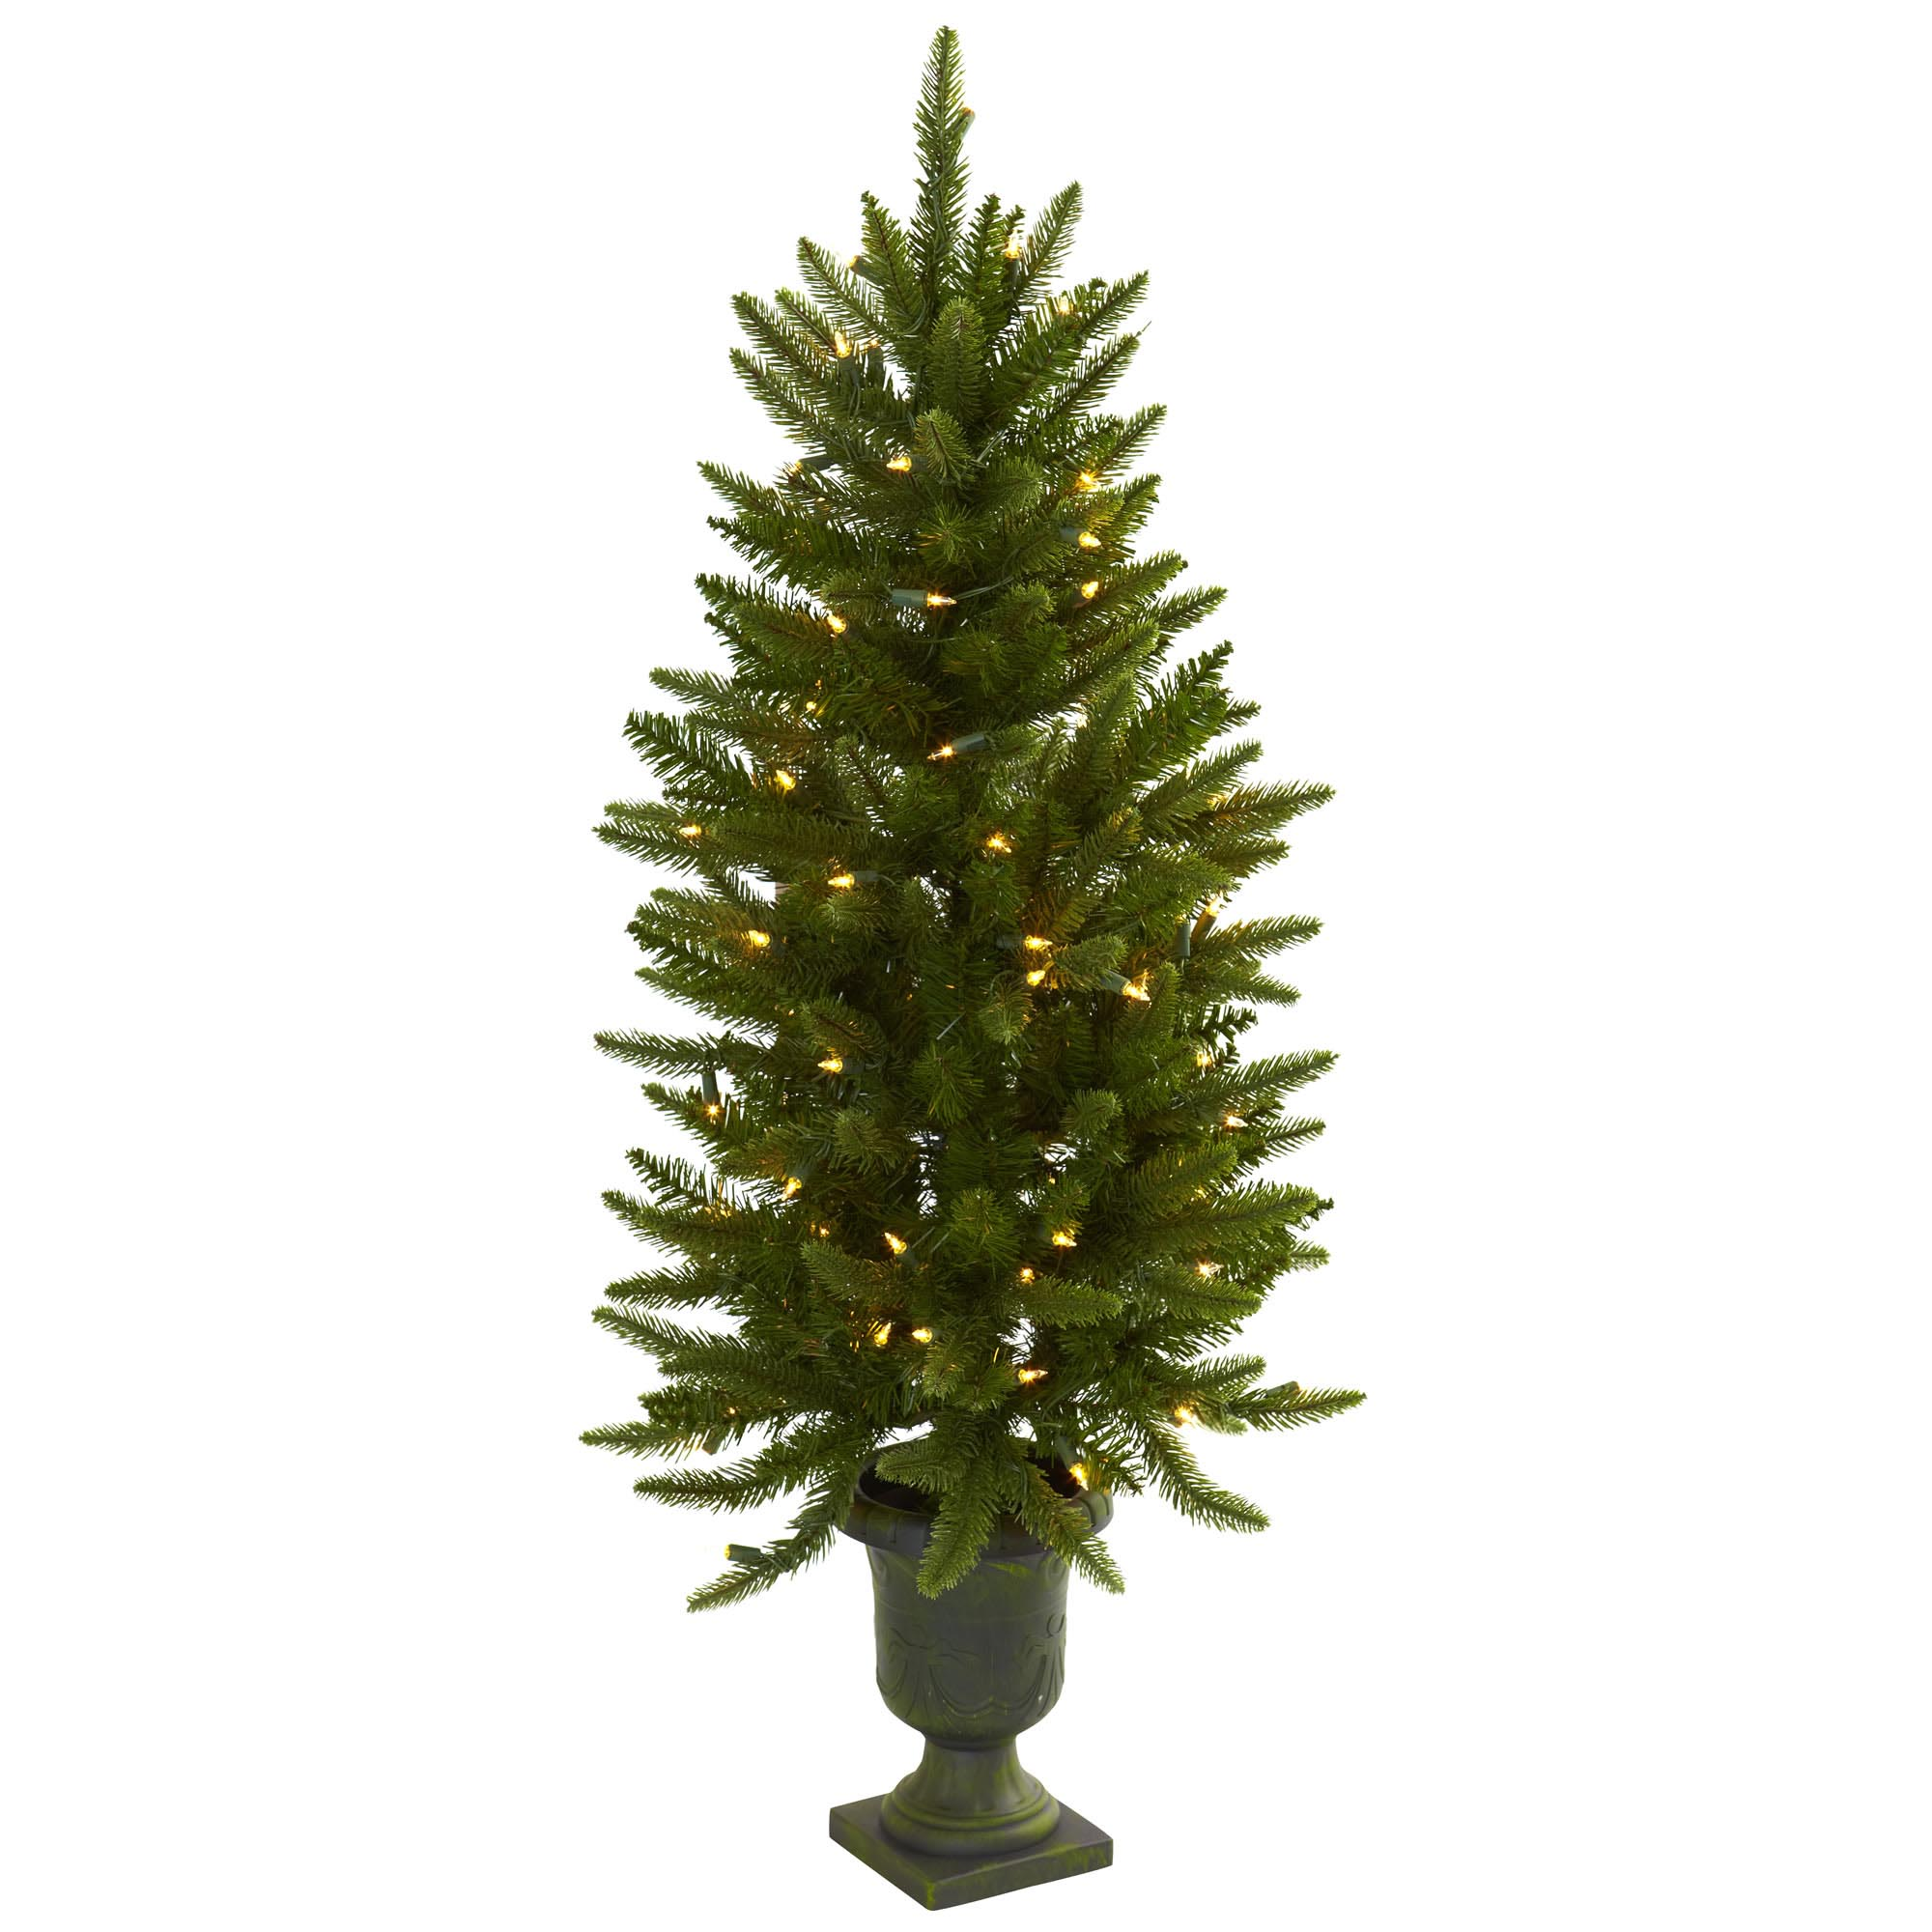 Artificial 4 Foot Christmas Trees: 4 Foot Artificial Christmas Tree In Urn: Clear Lights